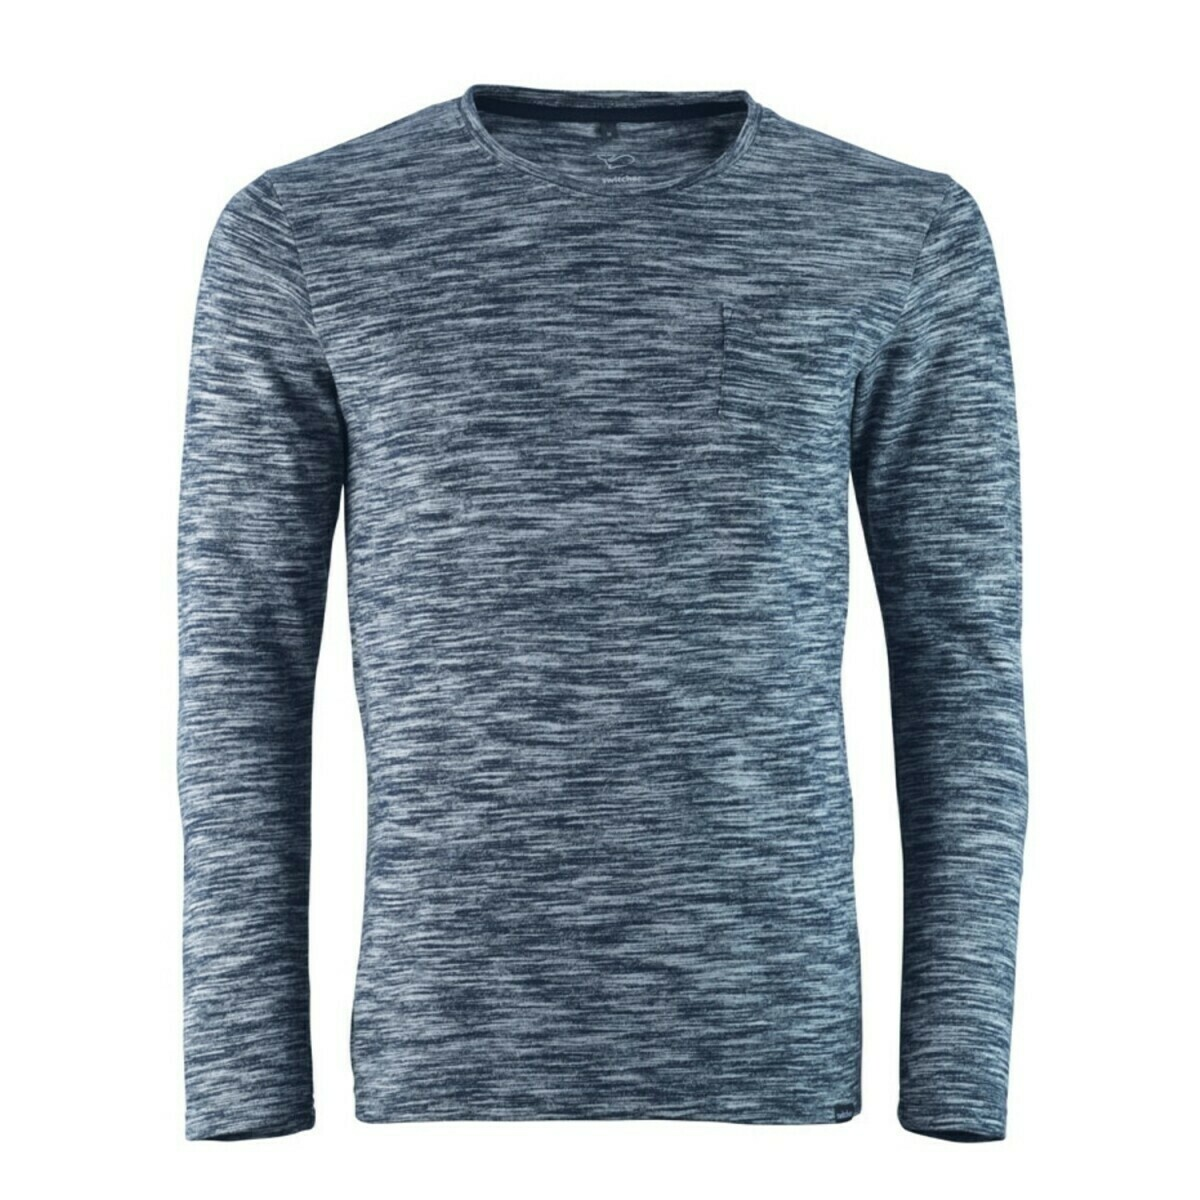 Switcher Sweatshirt mit Pocket